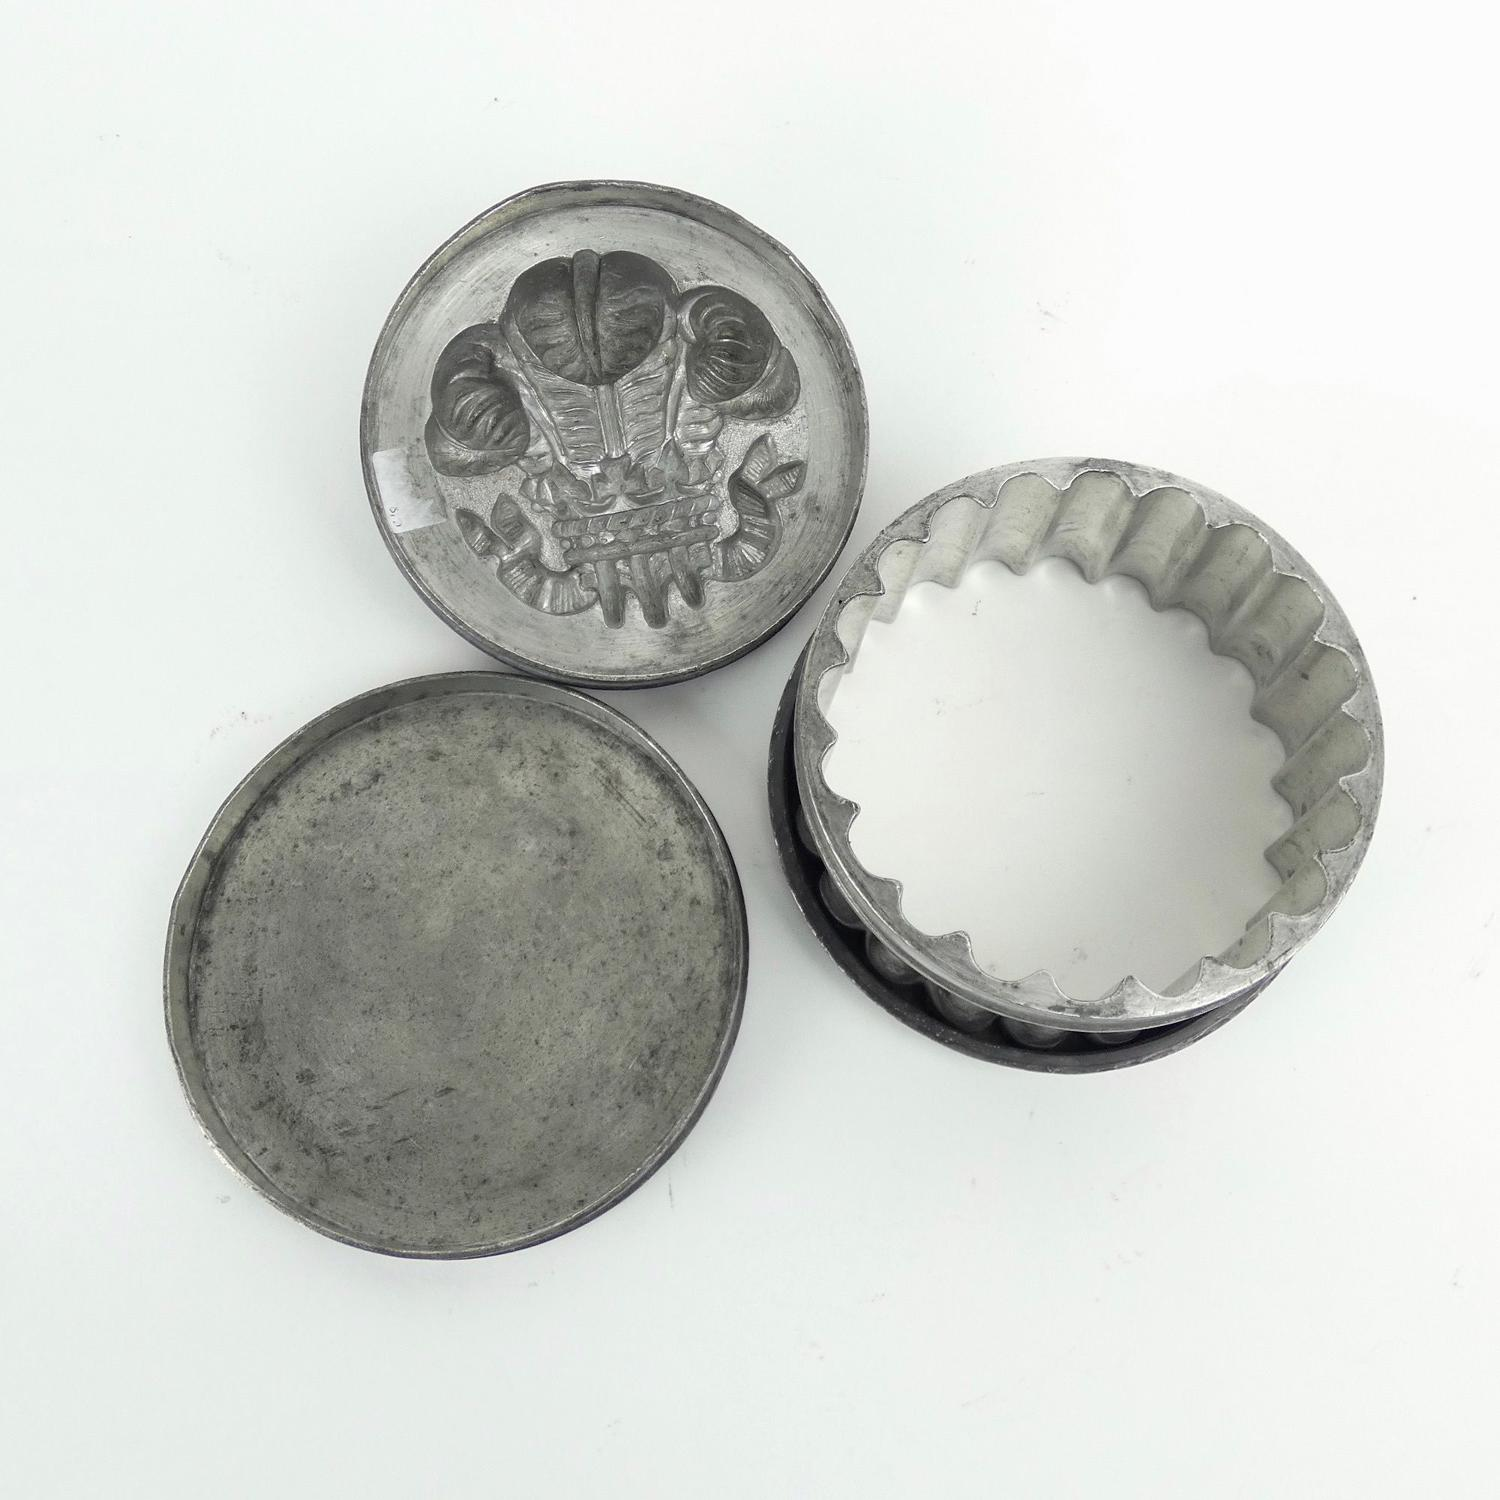 Pewter 'Prince of Wales feathers' ice cream mould